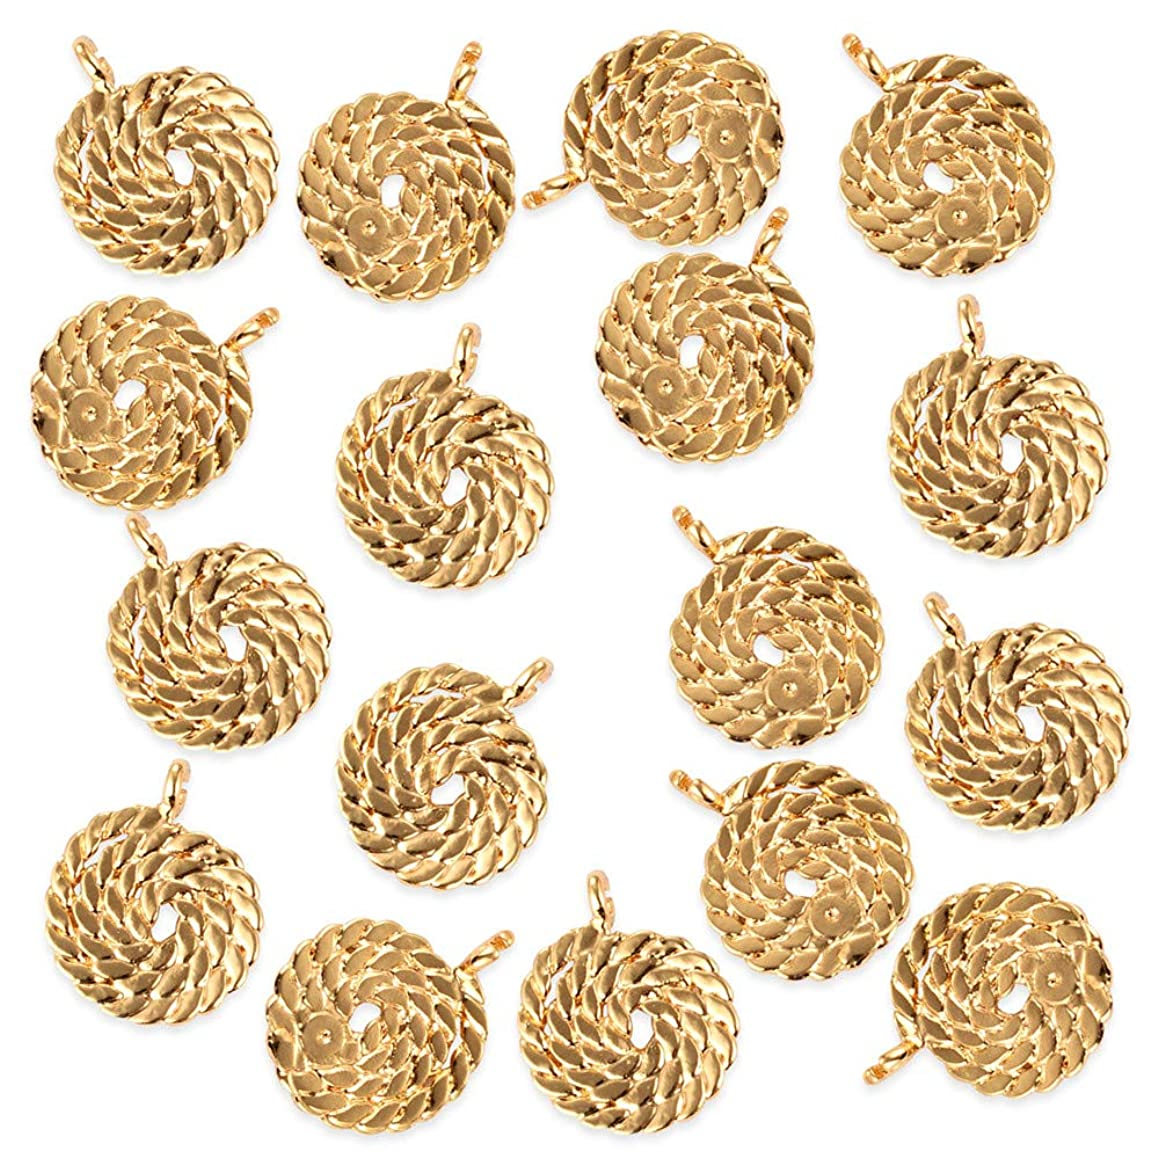 20Pcs Gold Lollipop Earring Charms Pendants Craft Supplies for Crafting, Jewelry Findings DIY Necklace Bracelet Making Accessory